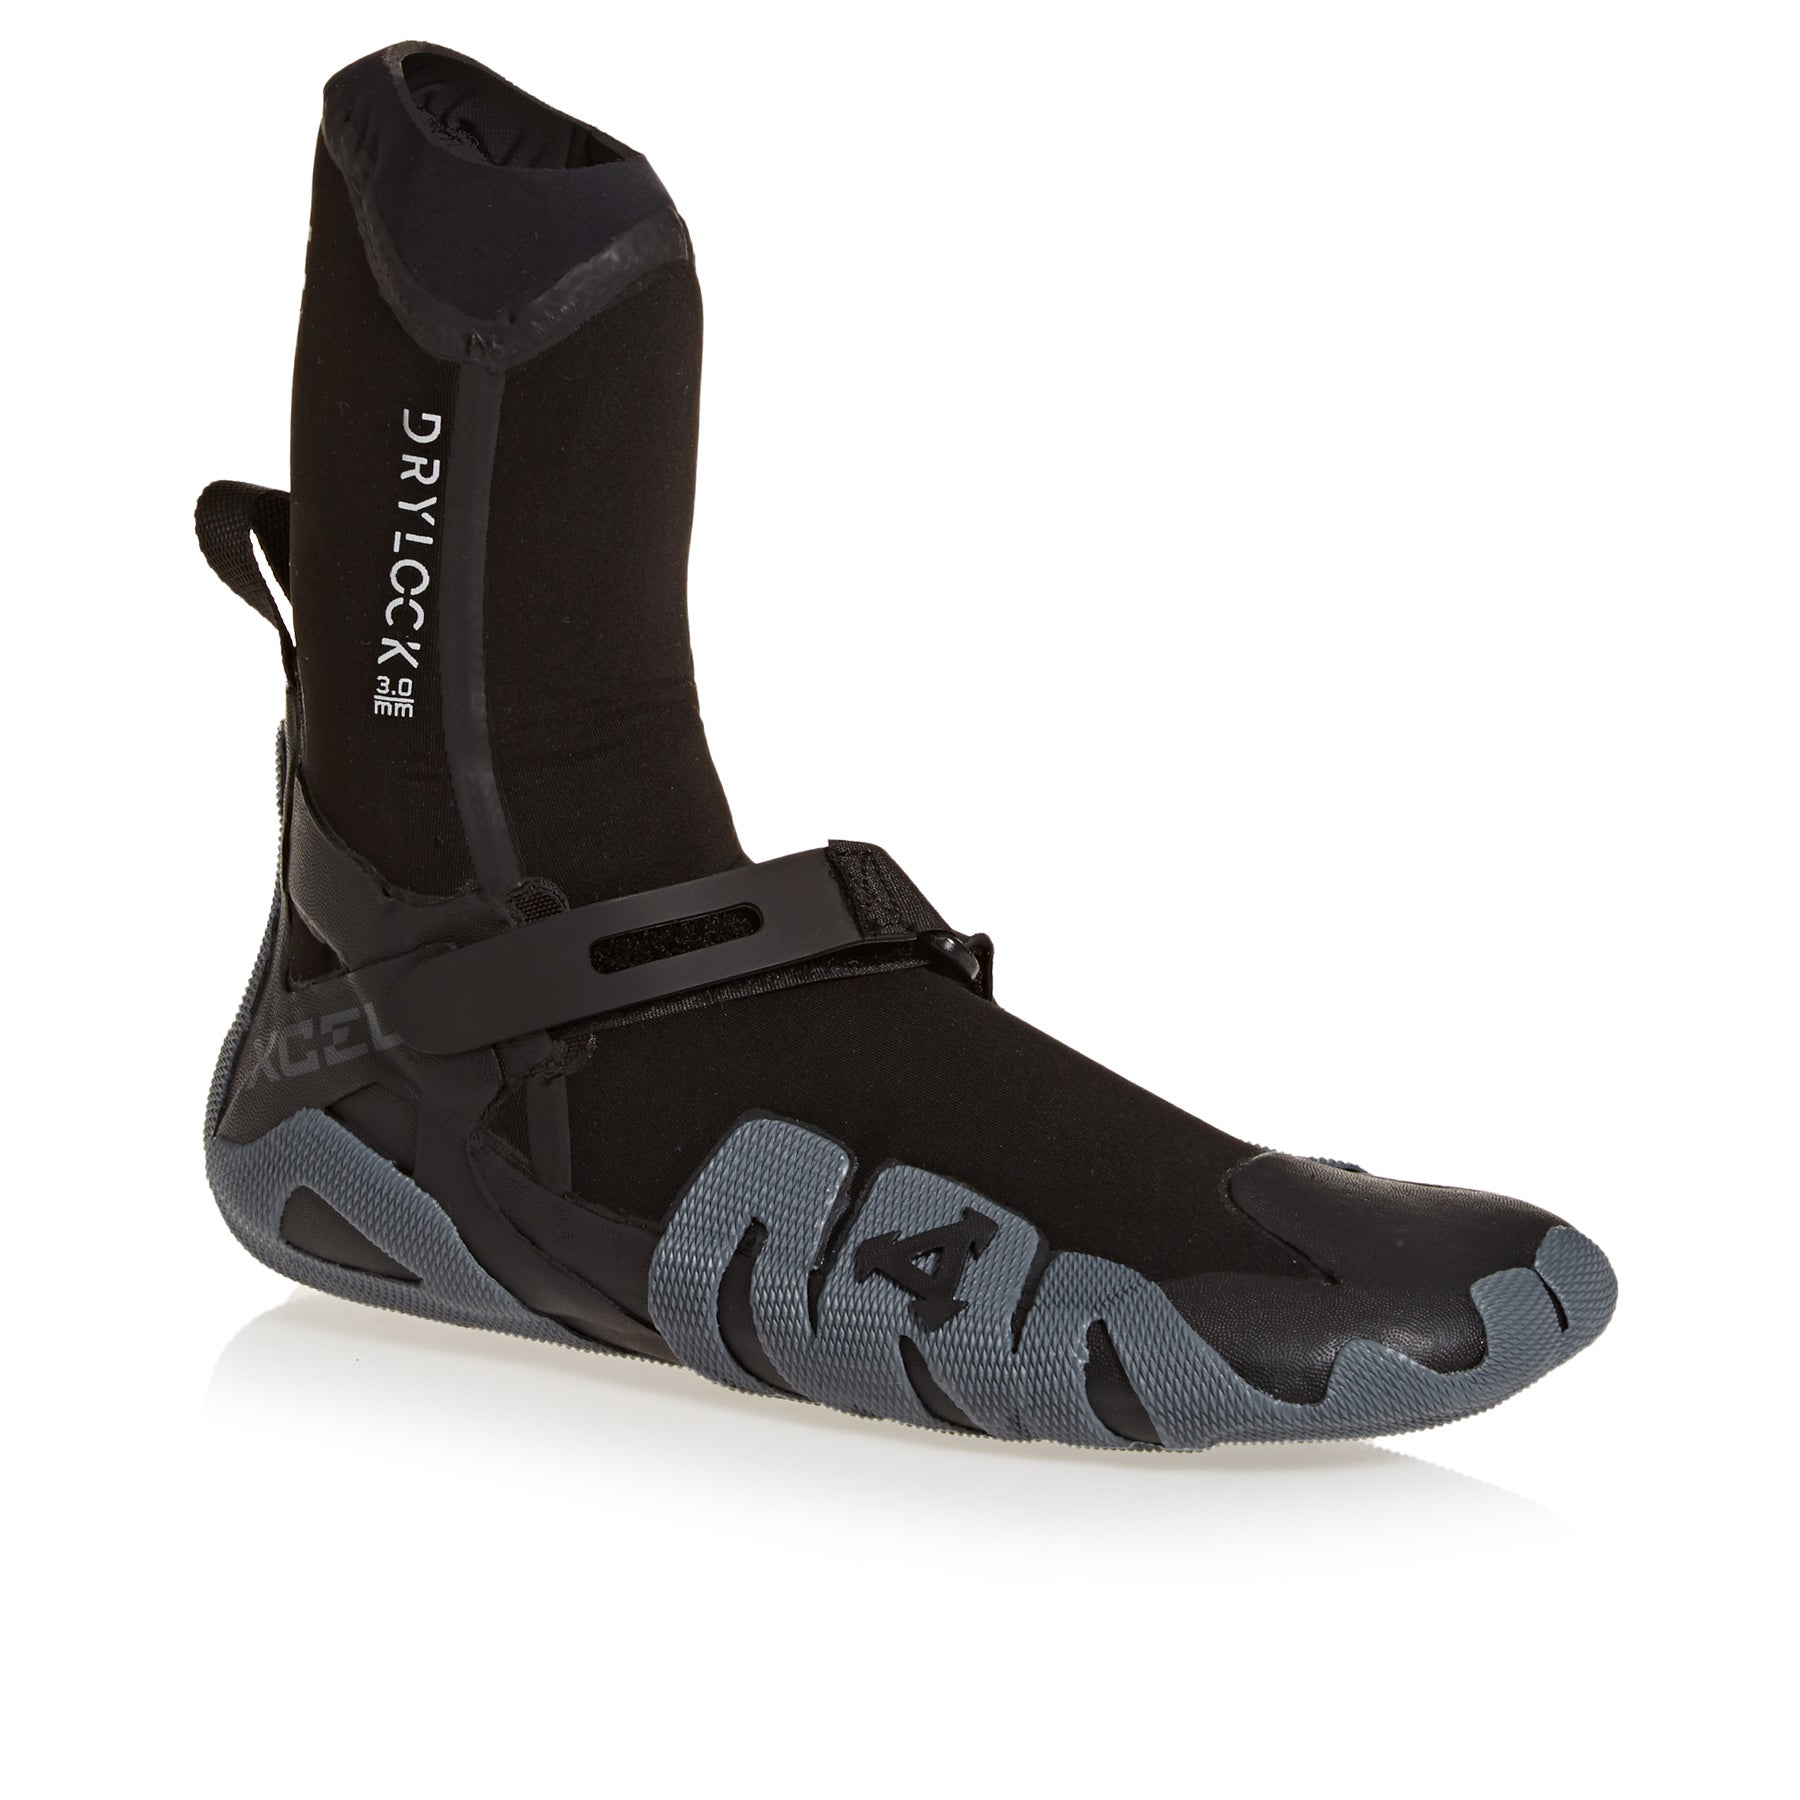 Xcel Drylock 3mm Round Toe Wetsuit Boots - Black Grey